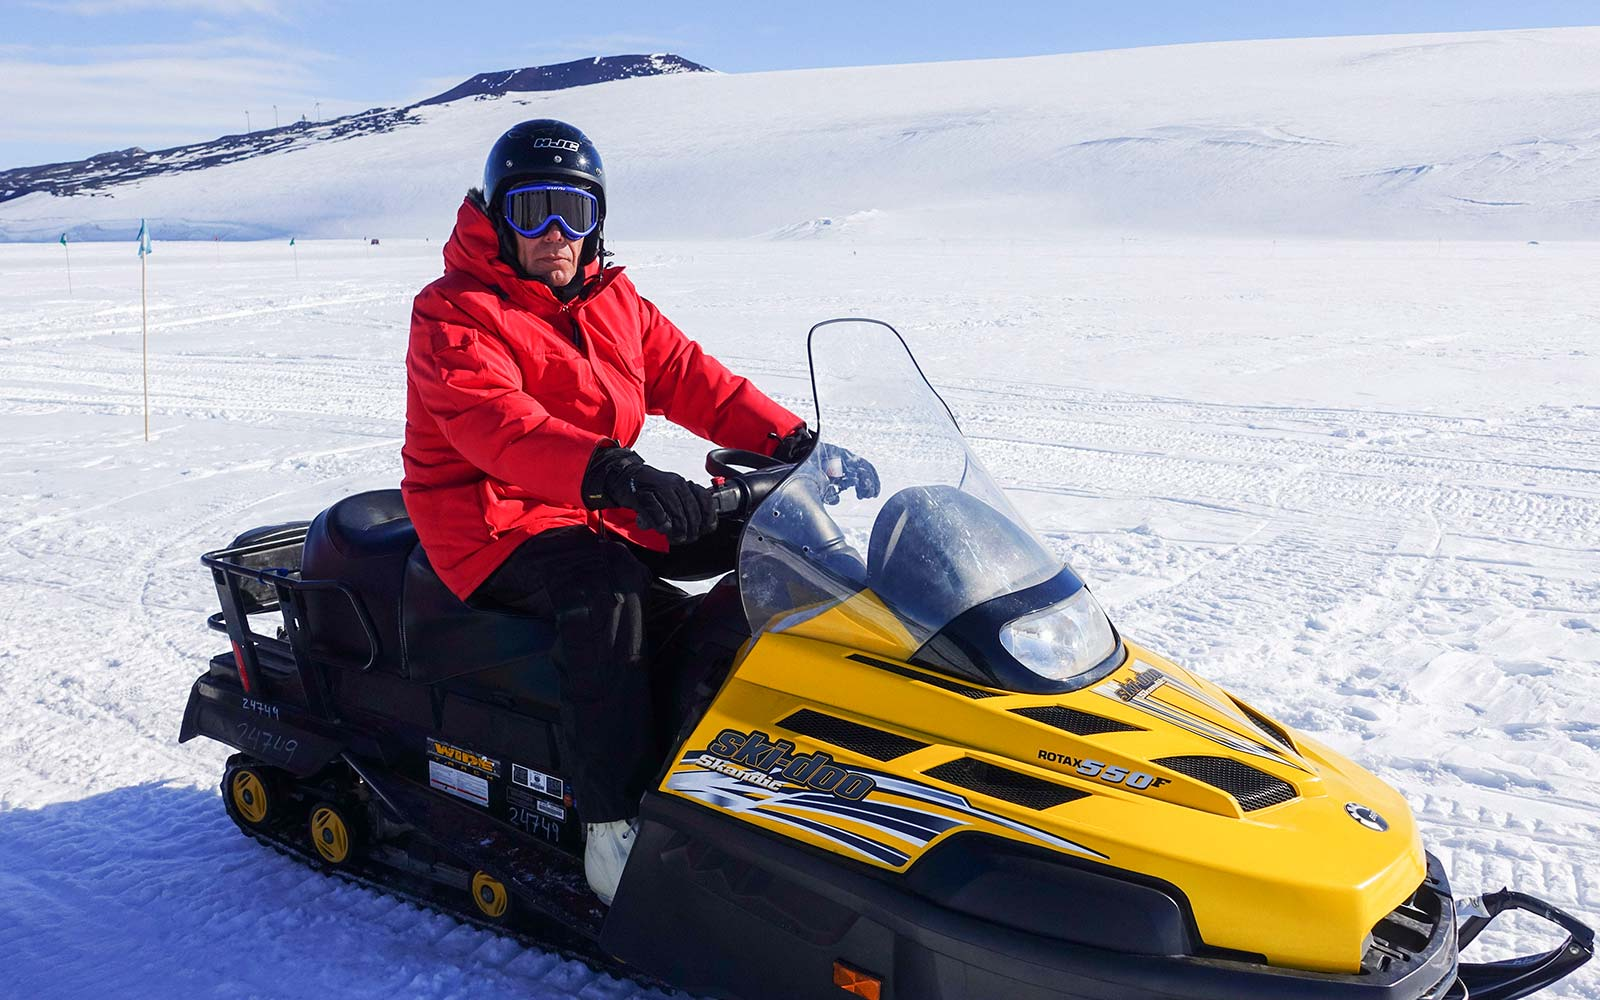 Anthony Bourdain Traveled to Antarctica and Hung Out With Penguins